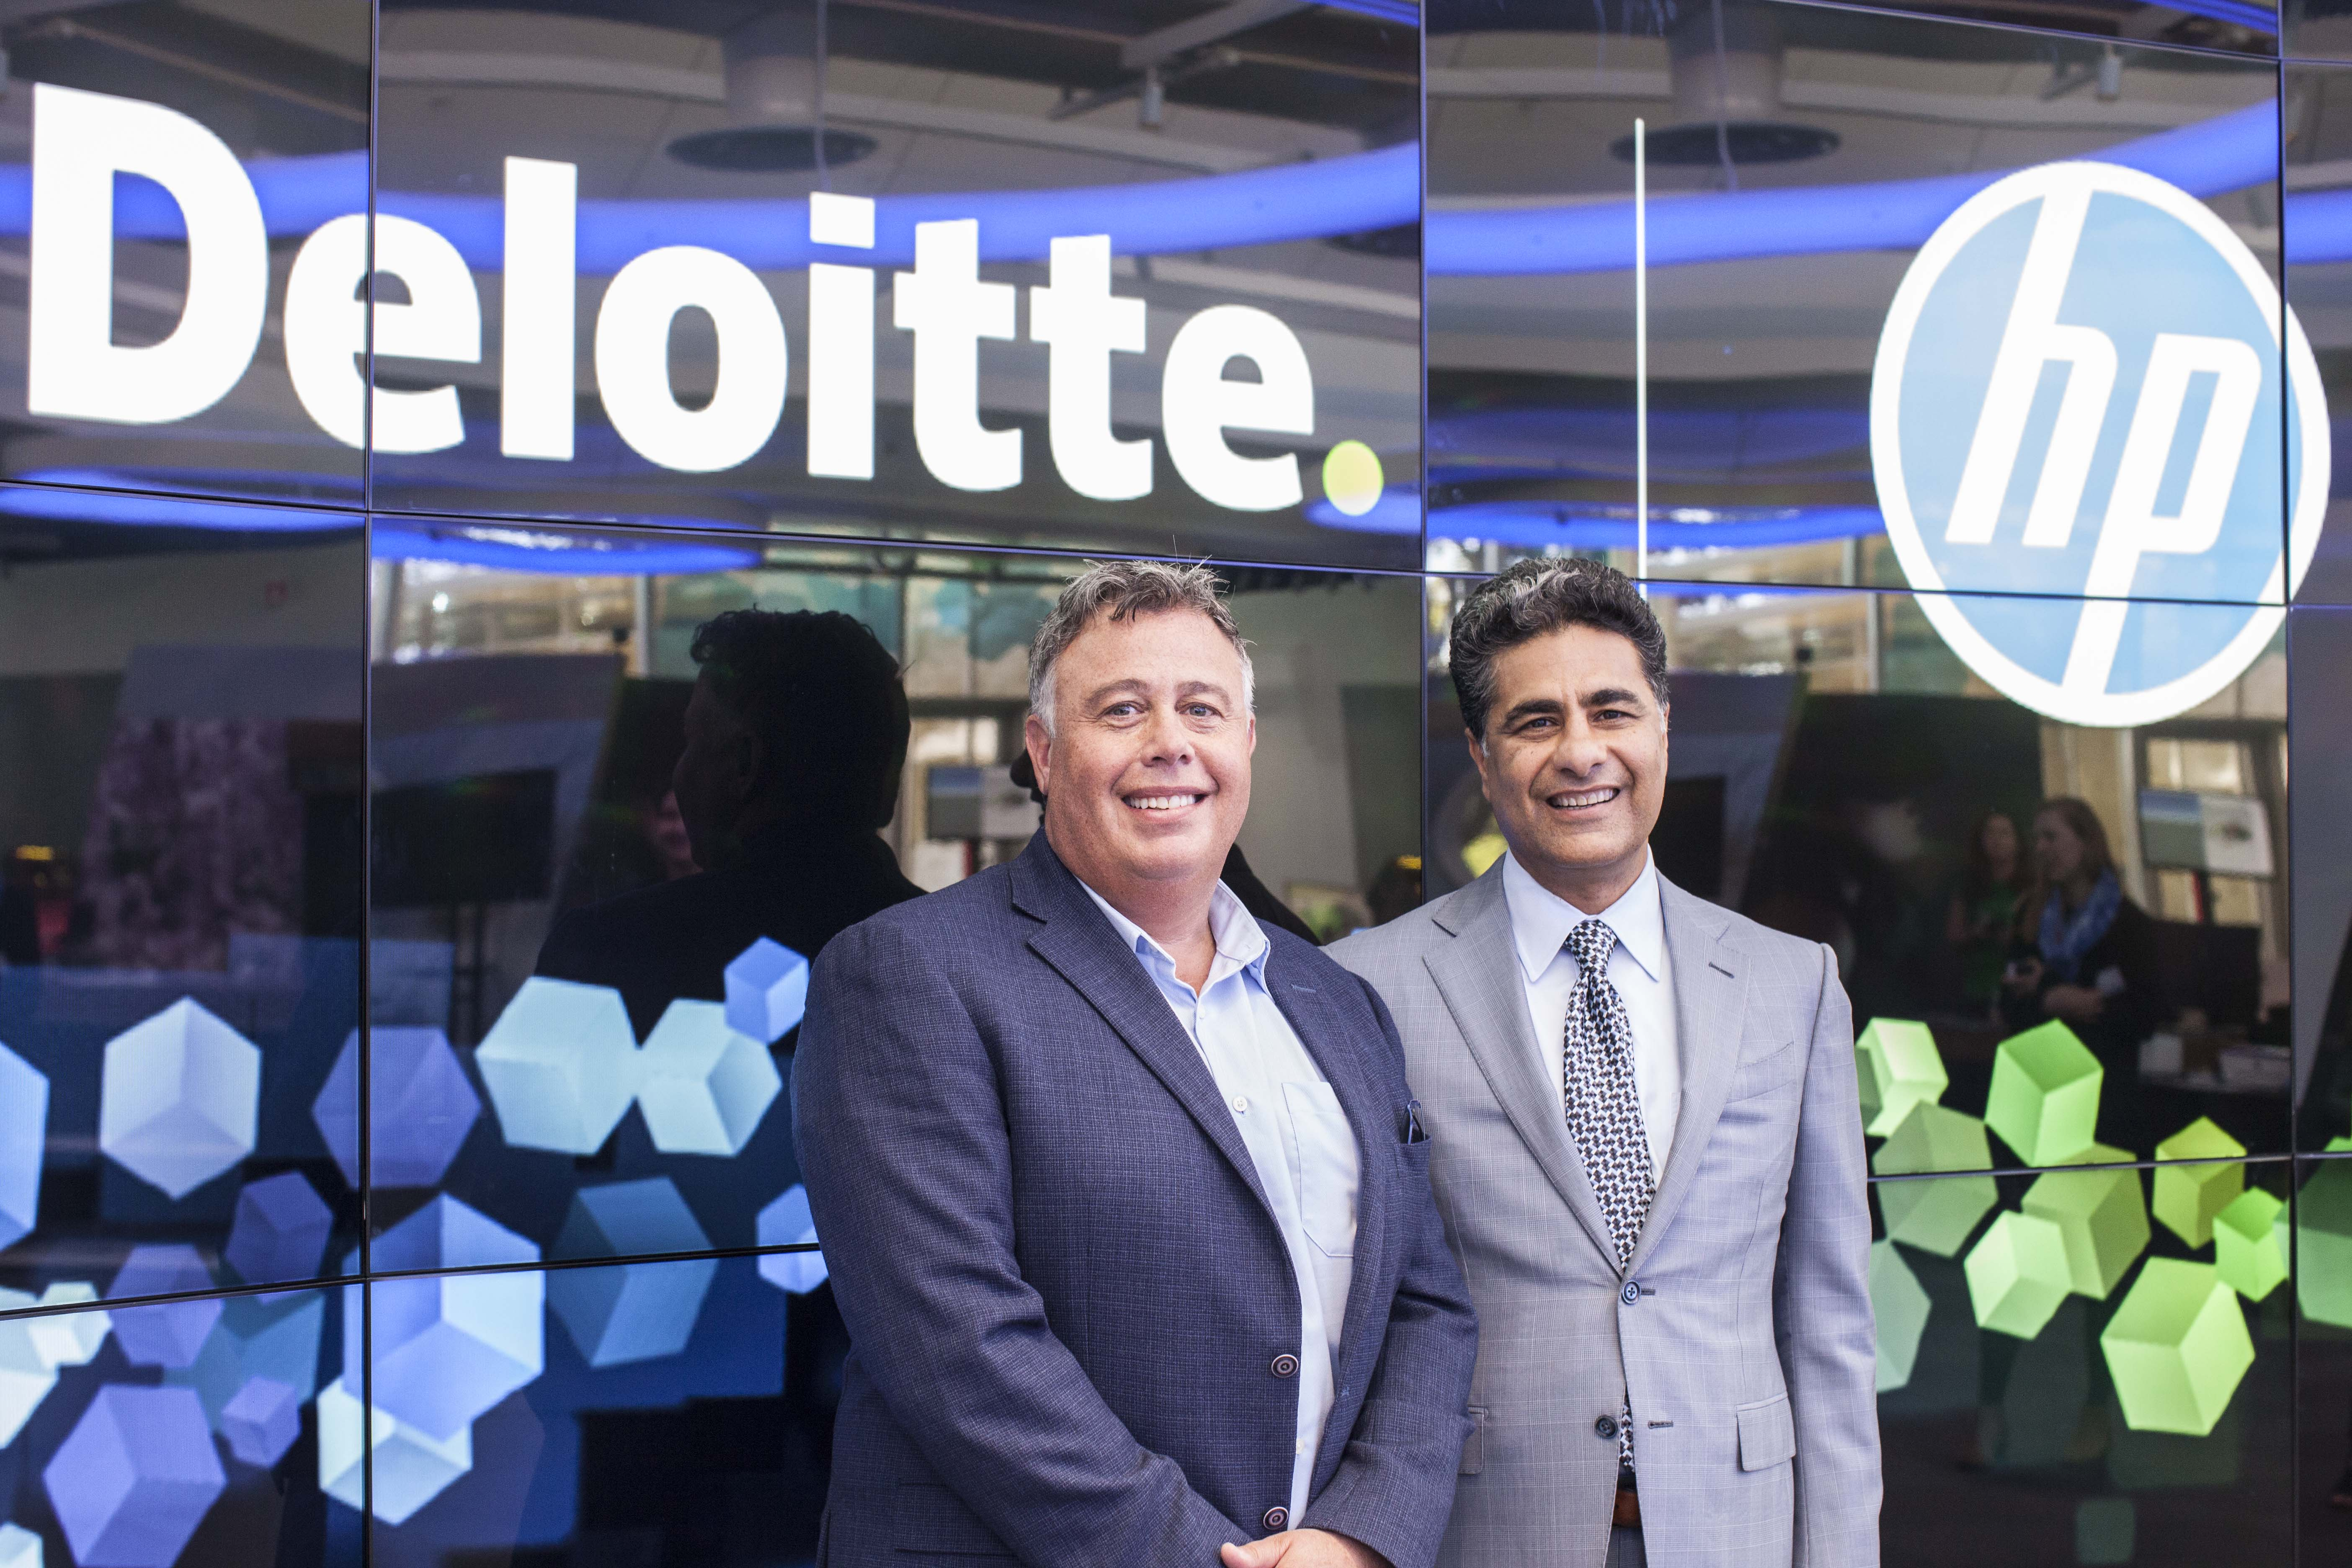 HP CEO Dion Wiesler and Deloitte CEO Punit Renjen